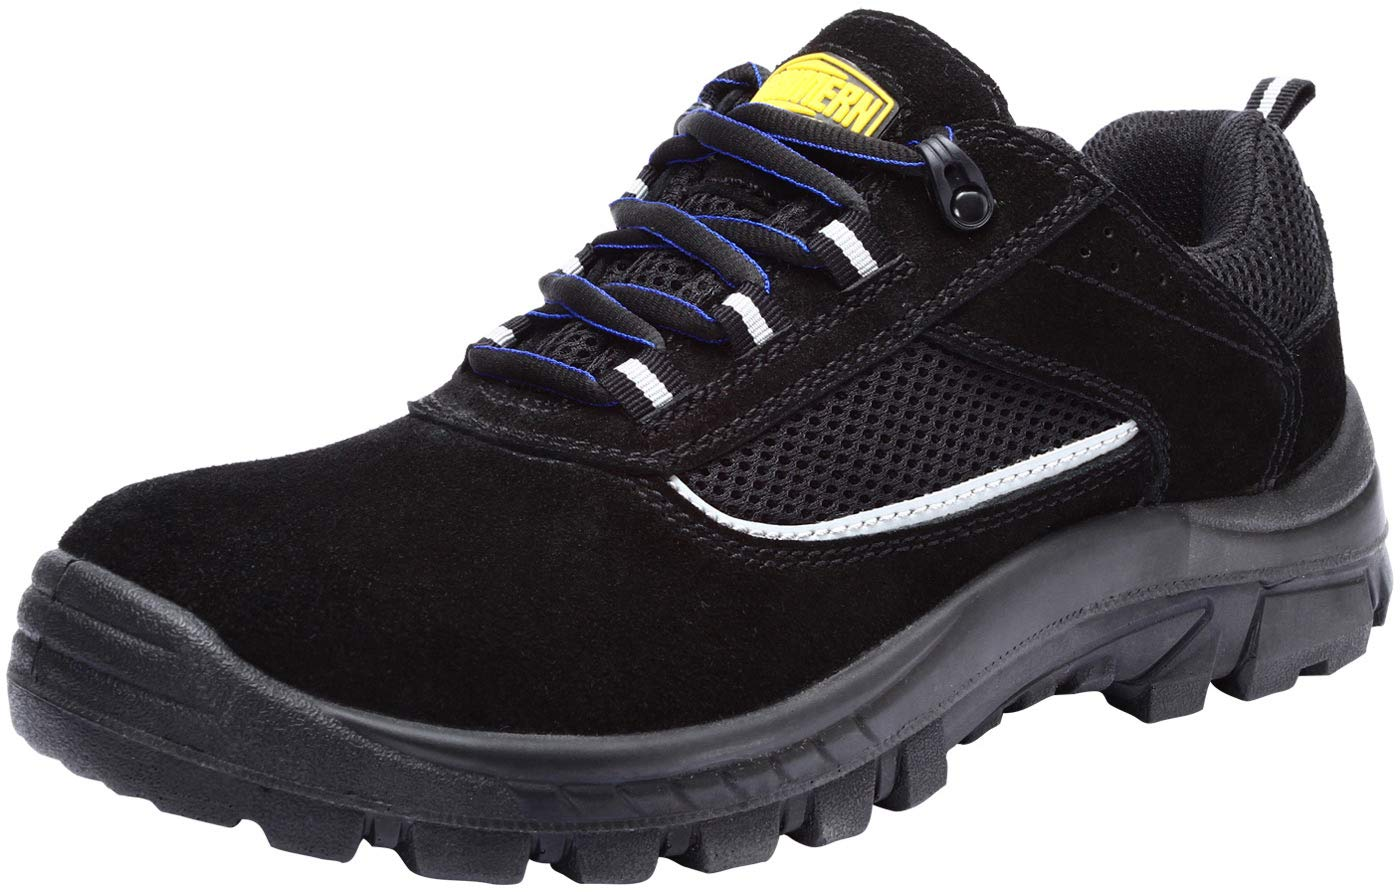 LARNMERN Safety Shoes Men Athletic Steel Toe Work Sneaker Lightweight Breathable Industrial & Construction Shoes (13 Women/10 Men, Black) by LARNMERN